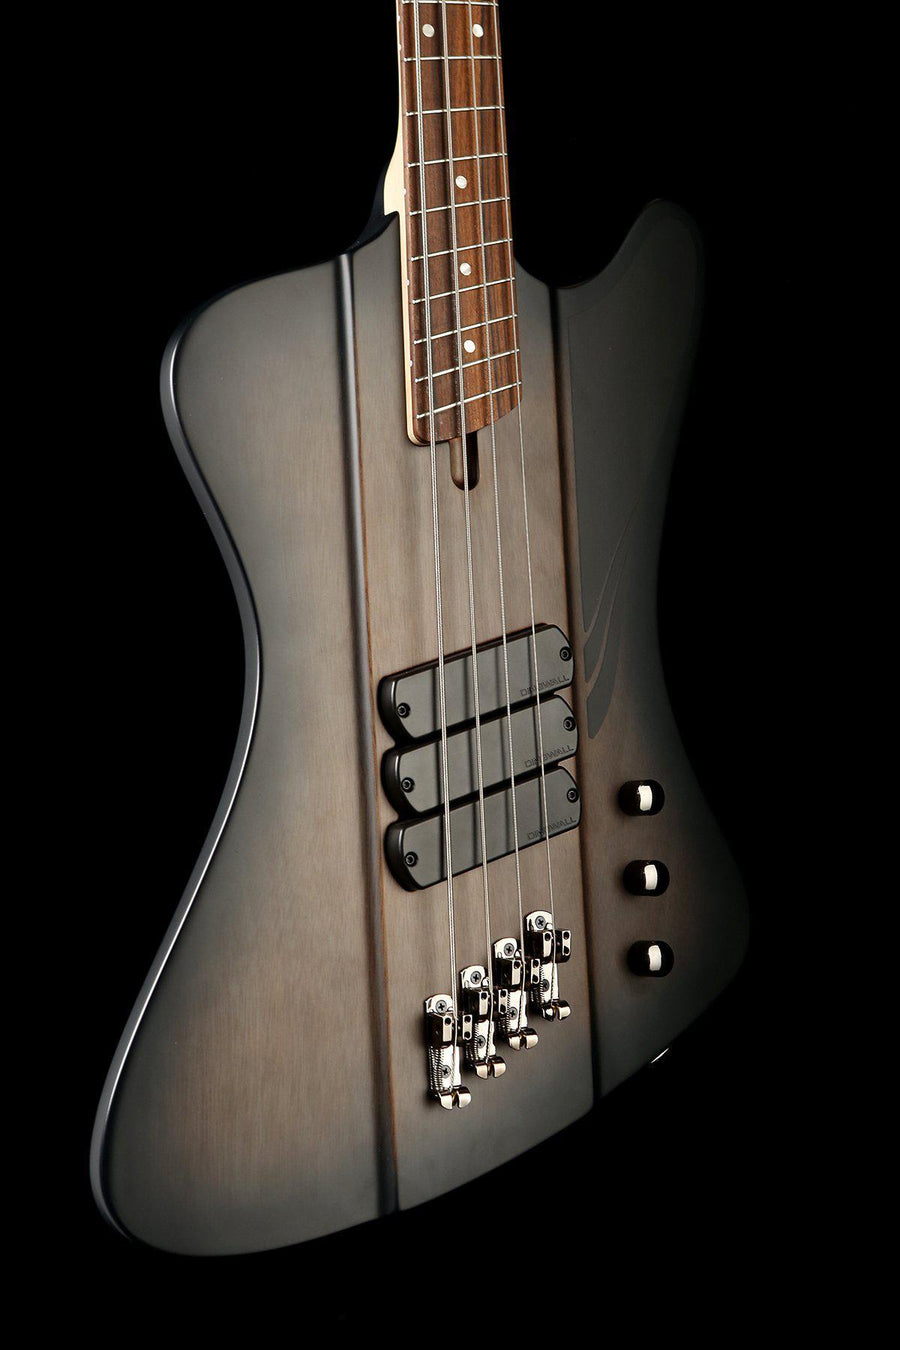 Bass Guitars - 2019 Dingwall D-Bird Standard 4 Blackburst